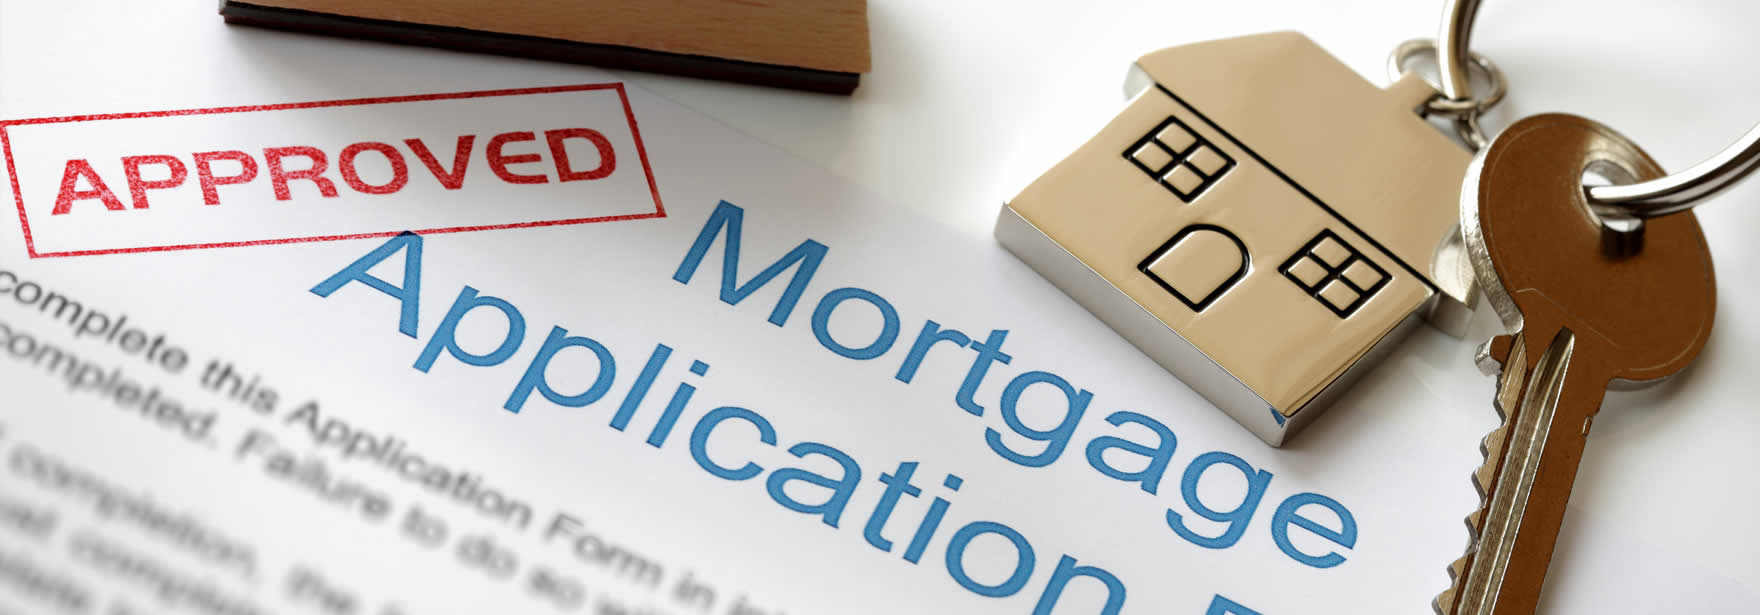 Get pre-approved for a home mortgage with Valley Mortgage, Inc. of Fargo, North Dakota.